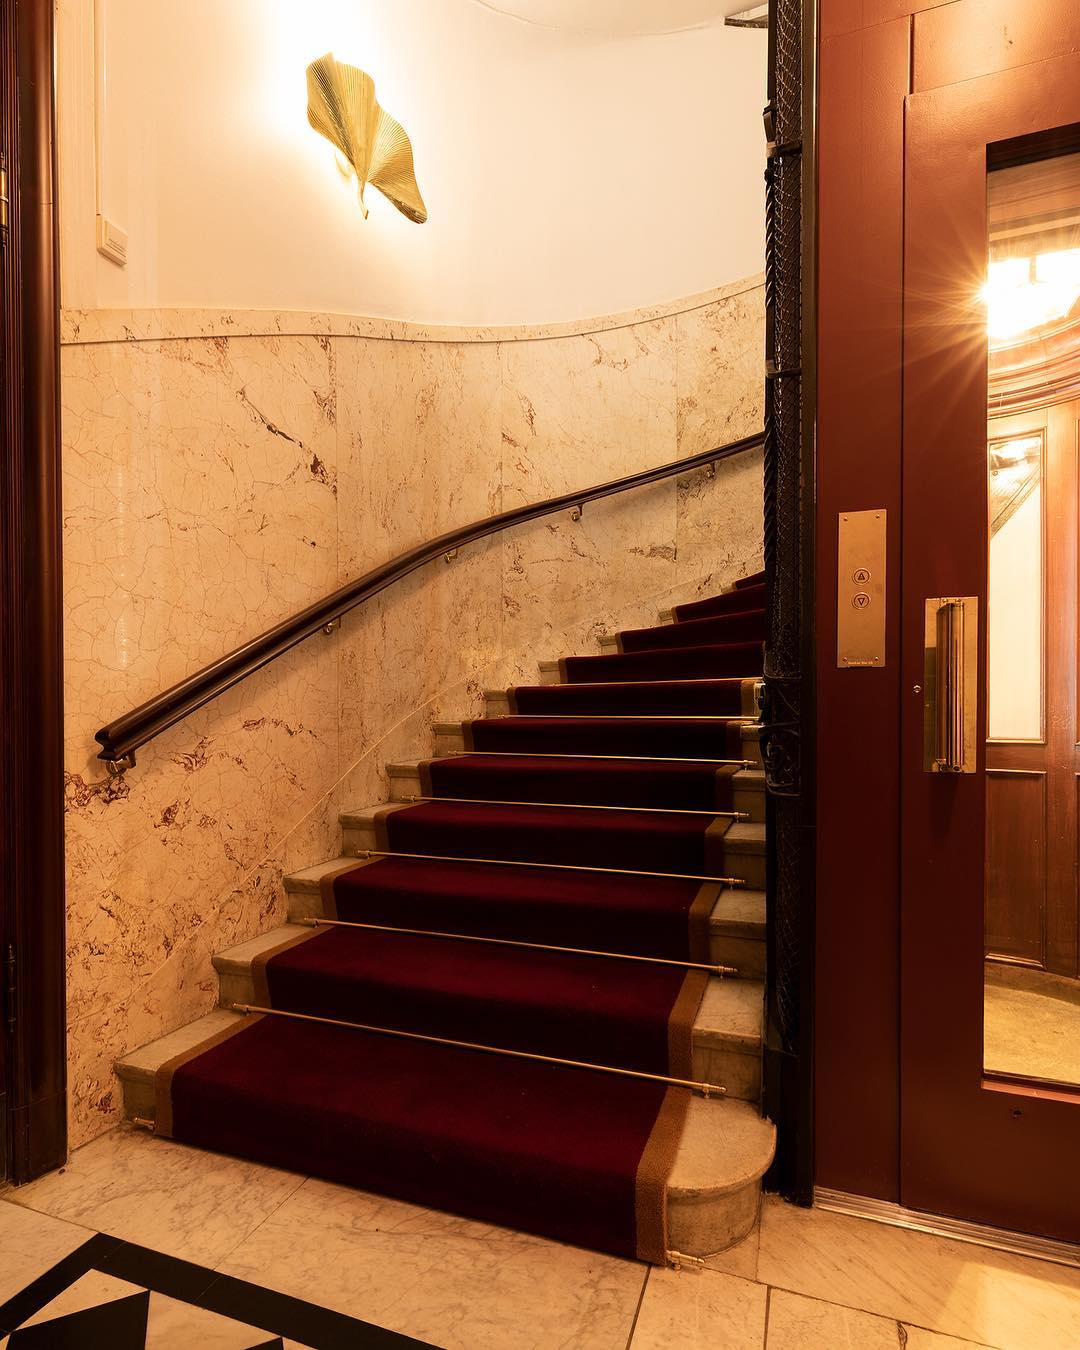 Staircase to heaven.<br /> #bankhotelstockholm #bankhotel...